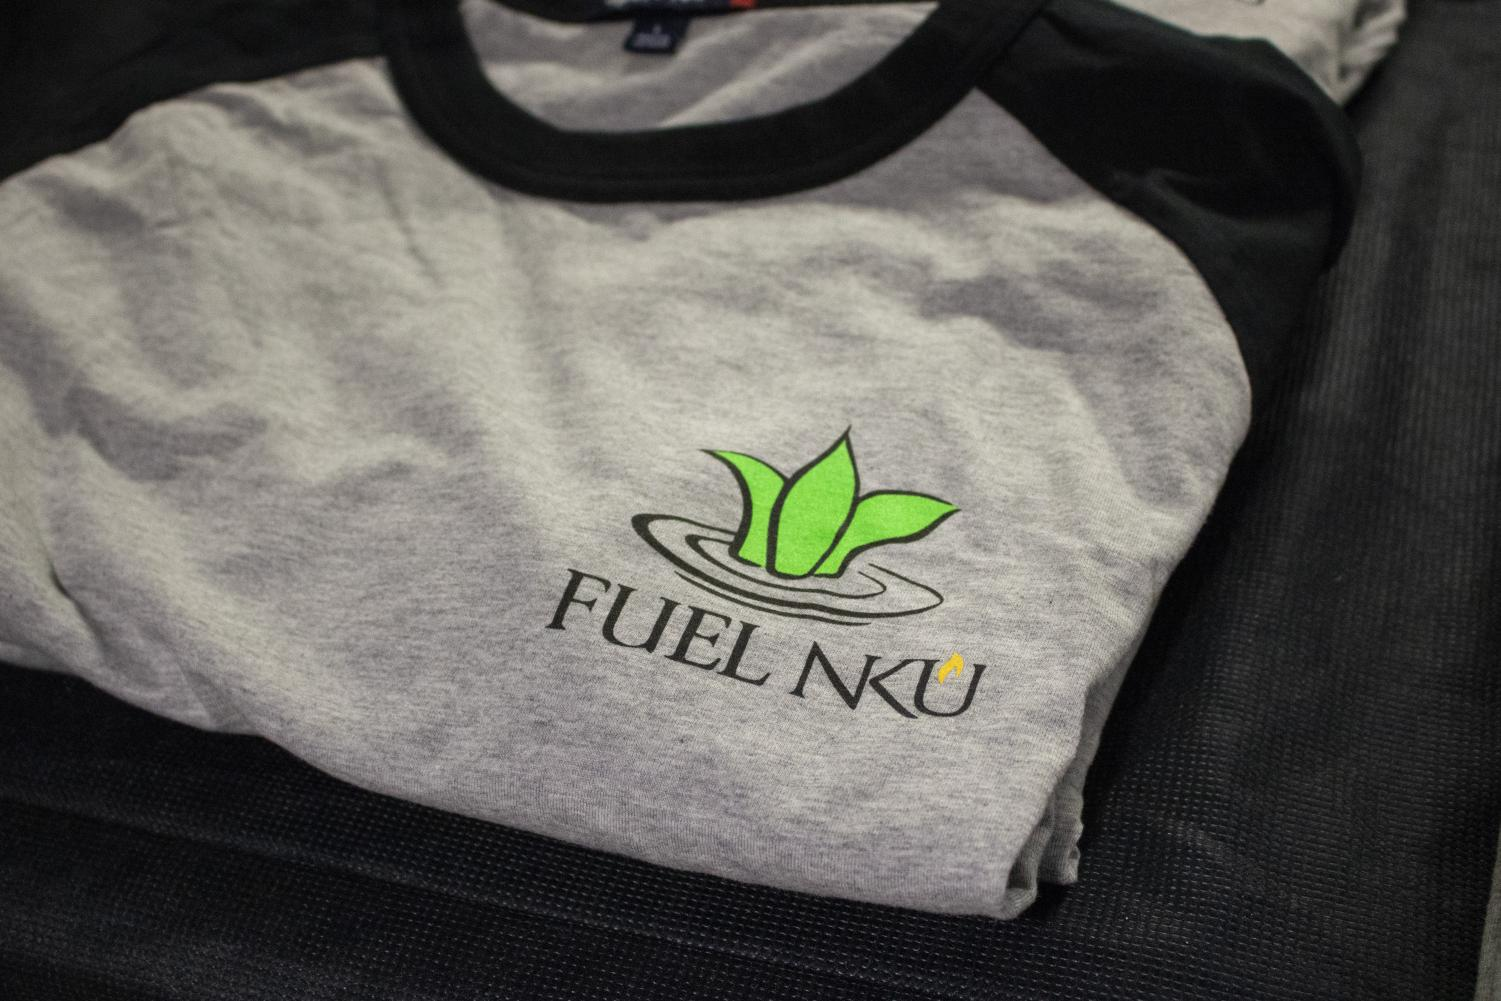 FUEL NKU is now located in Albright Health Center 104 from 10 a.m. to 2 p.m. Mondays, Wednesdays and Thursdays.